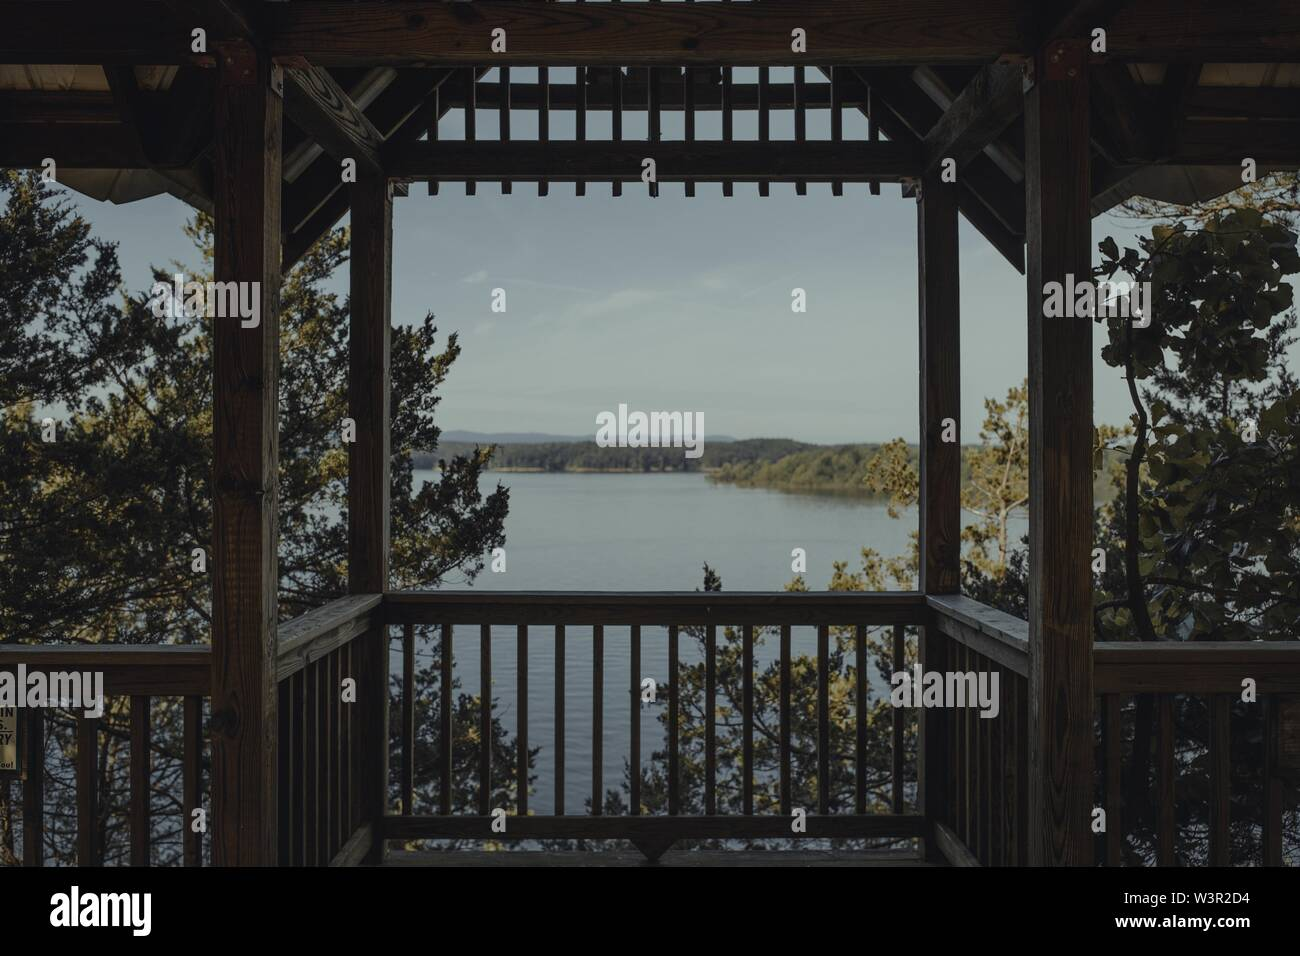 The beautiful view of the lake with a shoreline from a wooden arbor - Stock Image